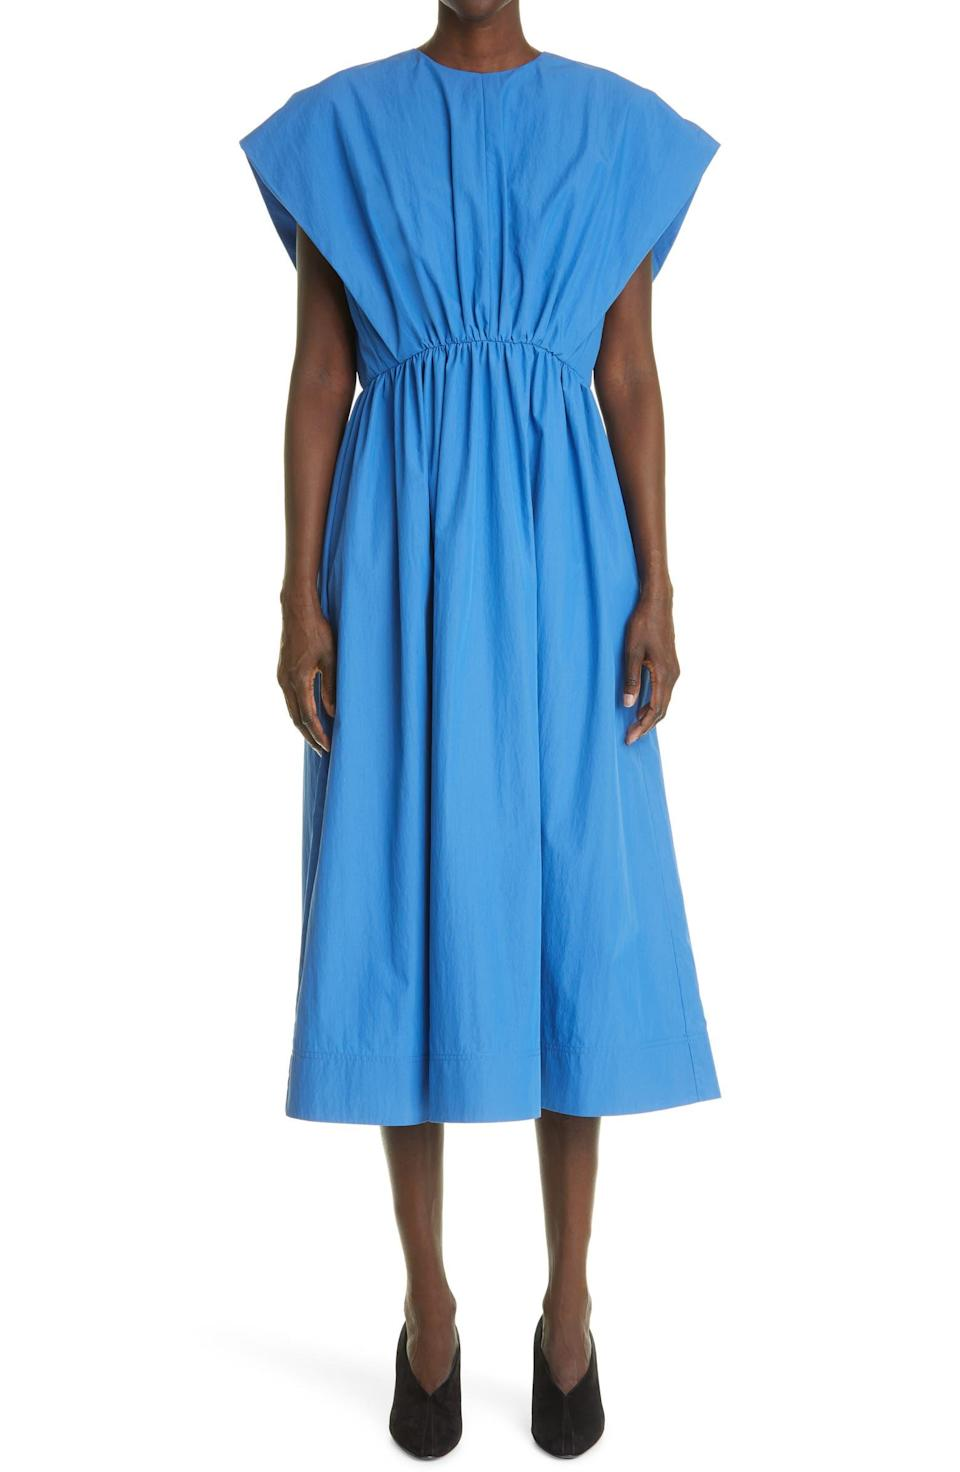 """<h2><a href=""""https://www.nordstrom.com/brands/co--13908"""" rel=""""nofollow noopener"""" target=""""_blank"""" data-ylk=""""slk:Up to 68% off Co"""" class=""""link rapid-noclick-resp"""">Up to 68% off Co</a></h2><br><br><strong>Co</strong> Gathered A-Line Poplin Midi Dress, $, available at <a href=""""https://go.skimresources.com/?id=30283X879131&url=https%3A%2F%2Fwww.nordstrom.com%2Fs%2Fco-gathered-a-line-poplin-midi-dress%2F5930900"""" rel=""""nofollow noopener"""" target=""""_blank"""" data-ylk=""""slk:Nordstrom"""" class=""""link rapid-noclick-resp"""">Nordstrom</a>"""